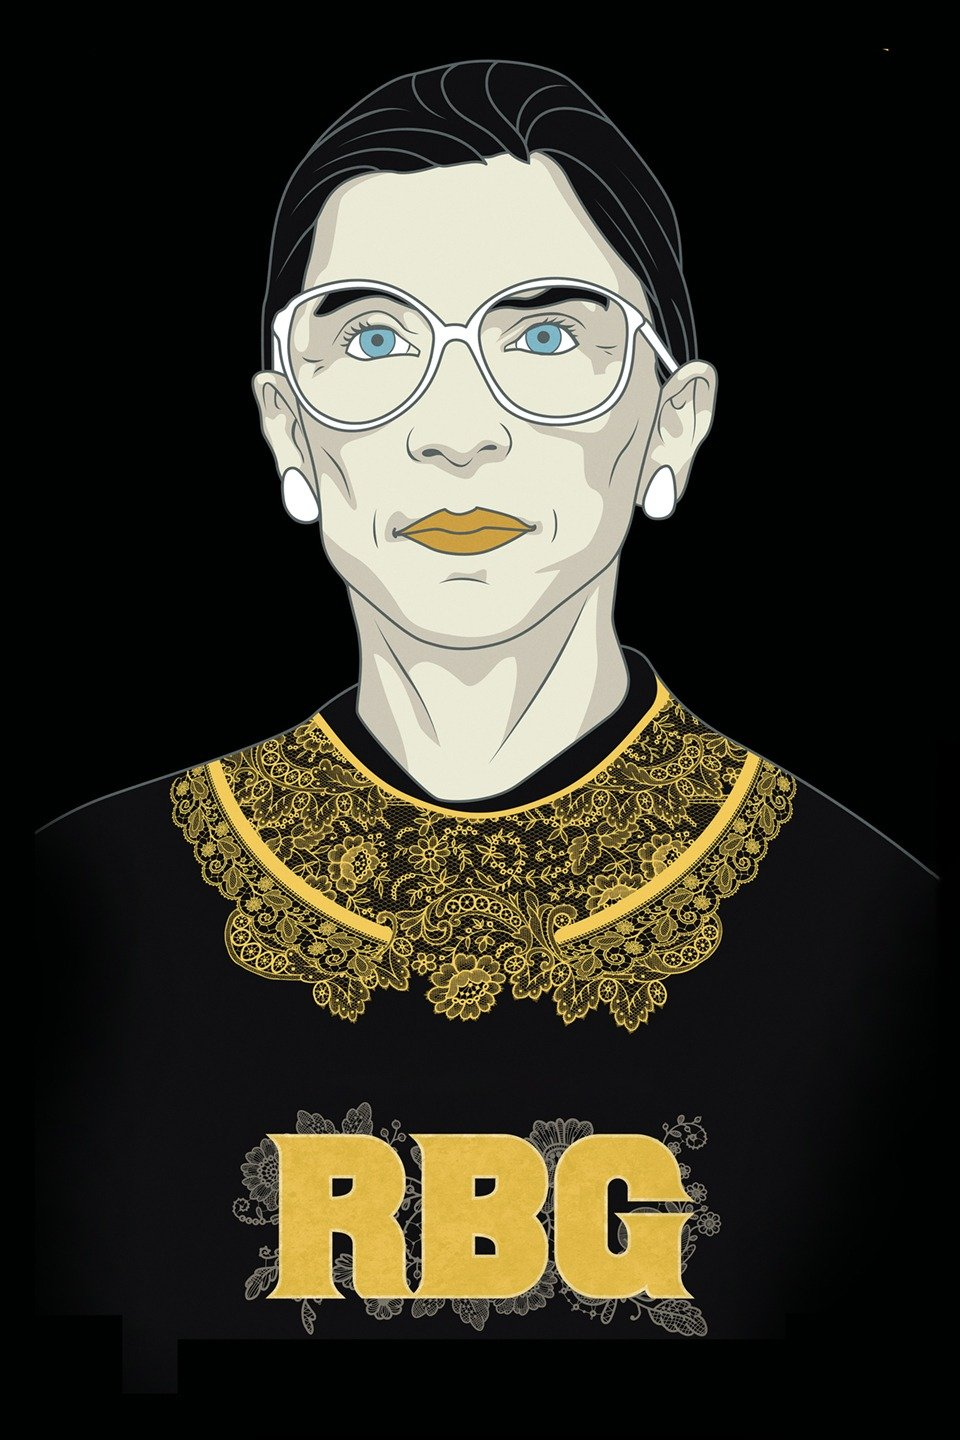 RBG, US poster, Ruth Bader Ginsburg, 2018. © Magnolia Pictures /Courtesy